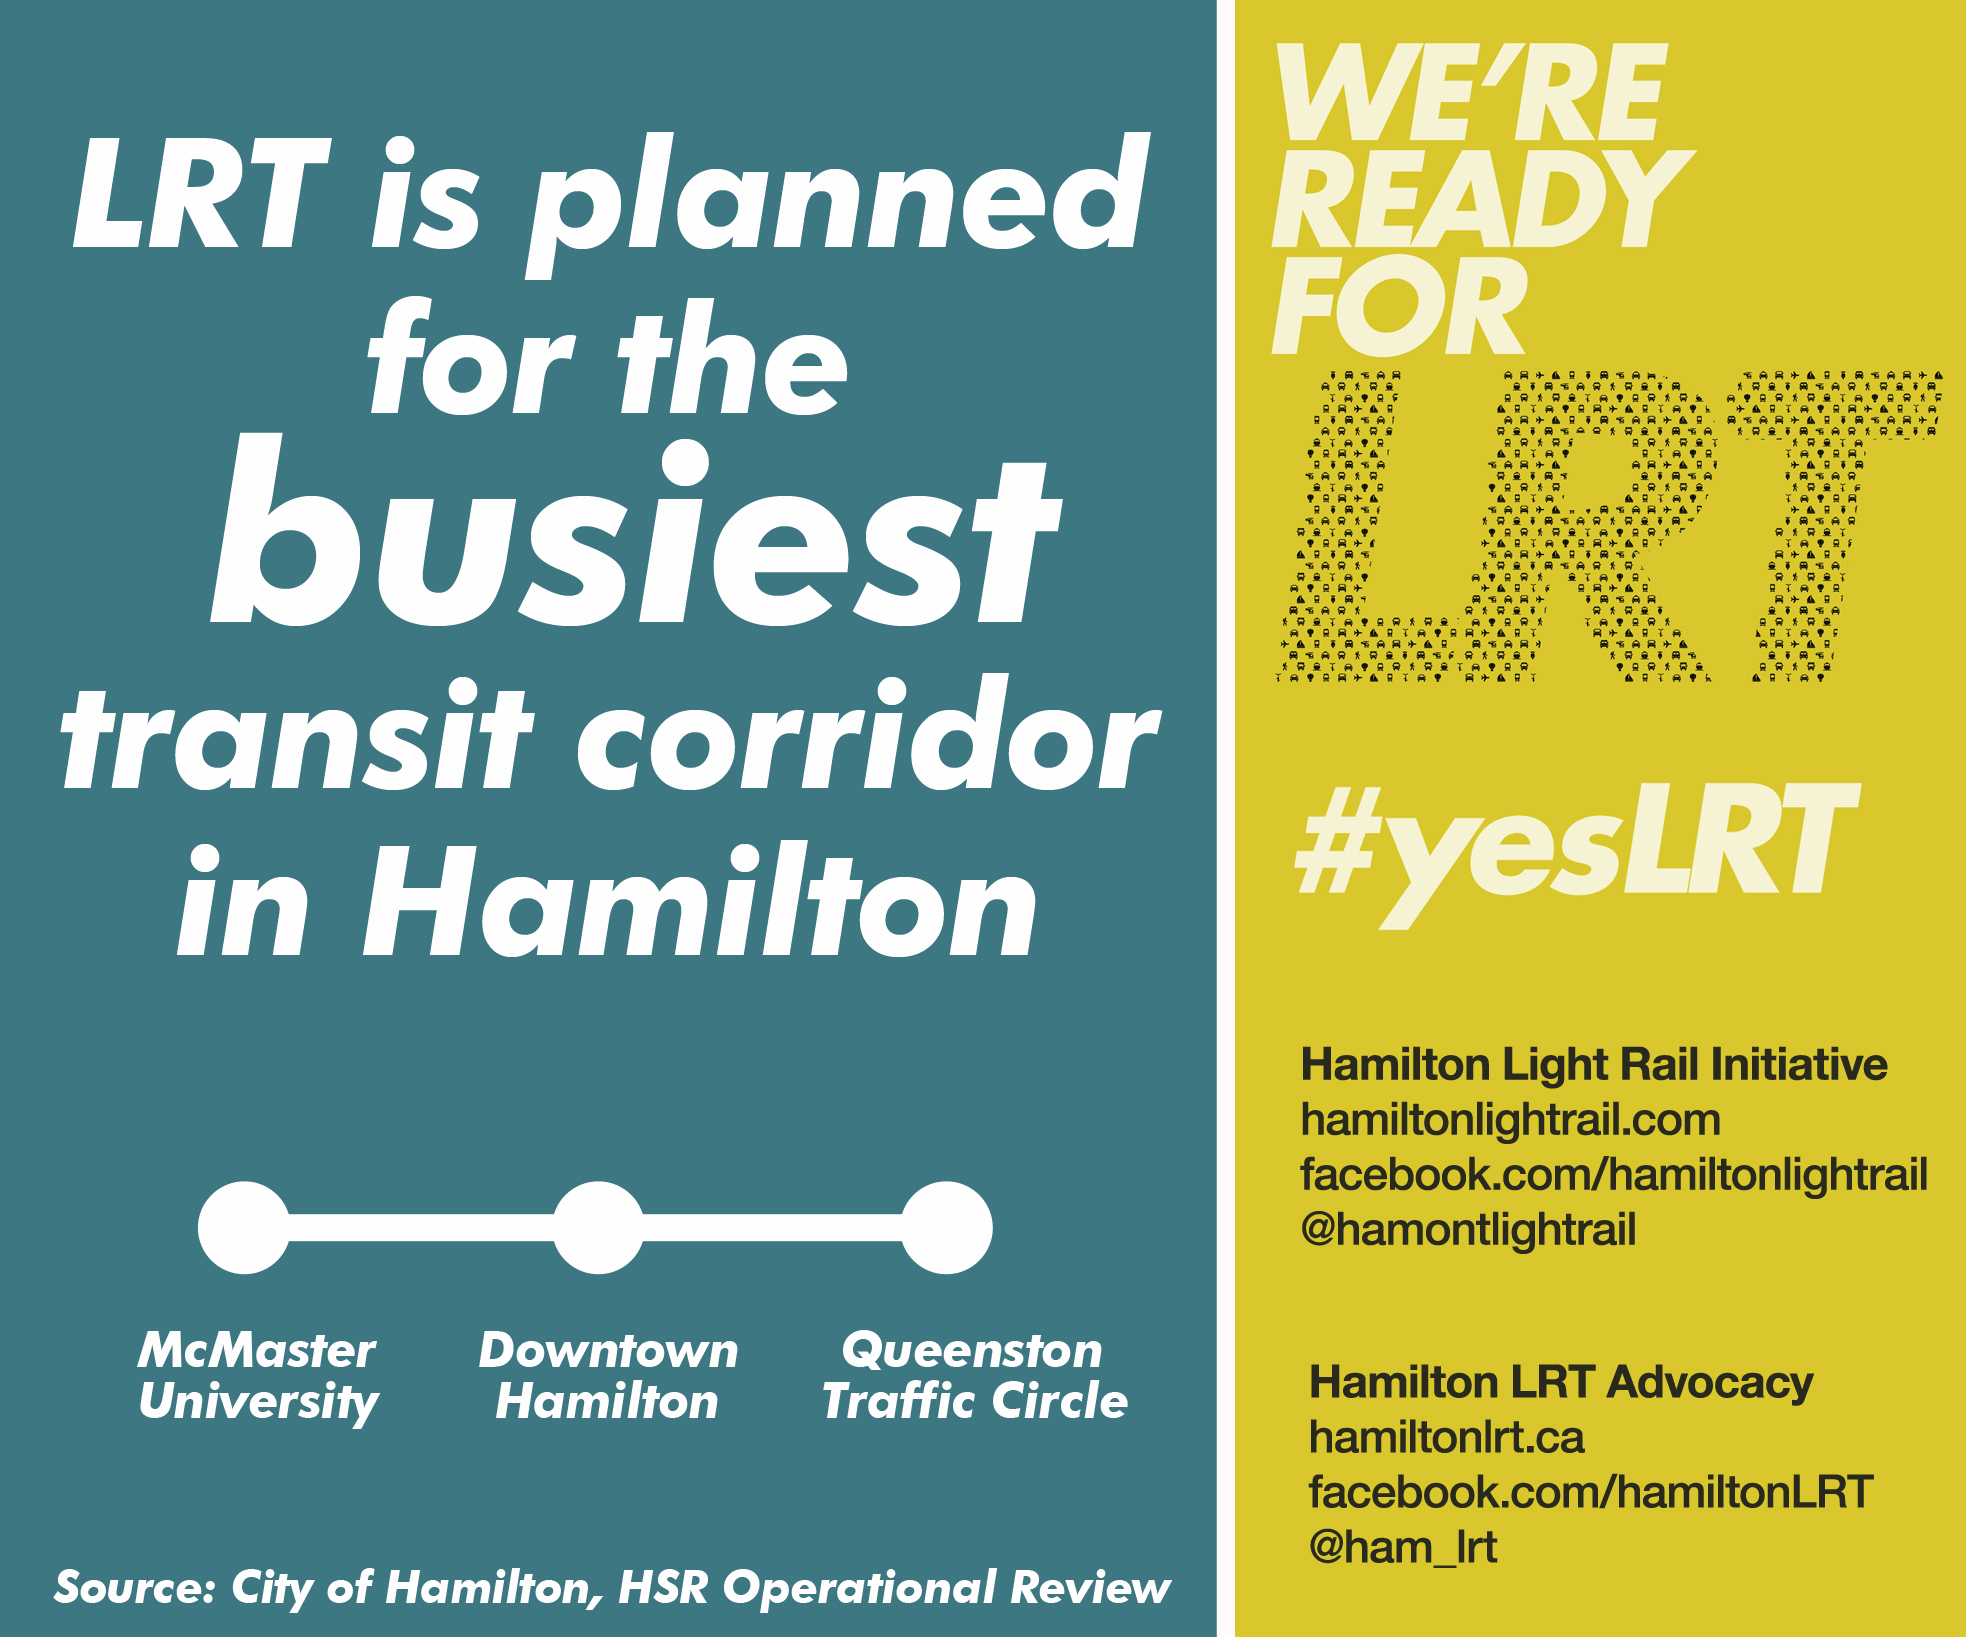 LRT is planned for the busiest transit corridor in Hamilton.